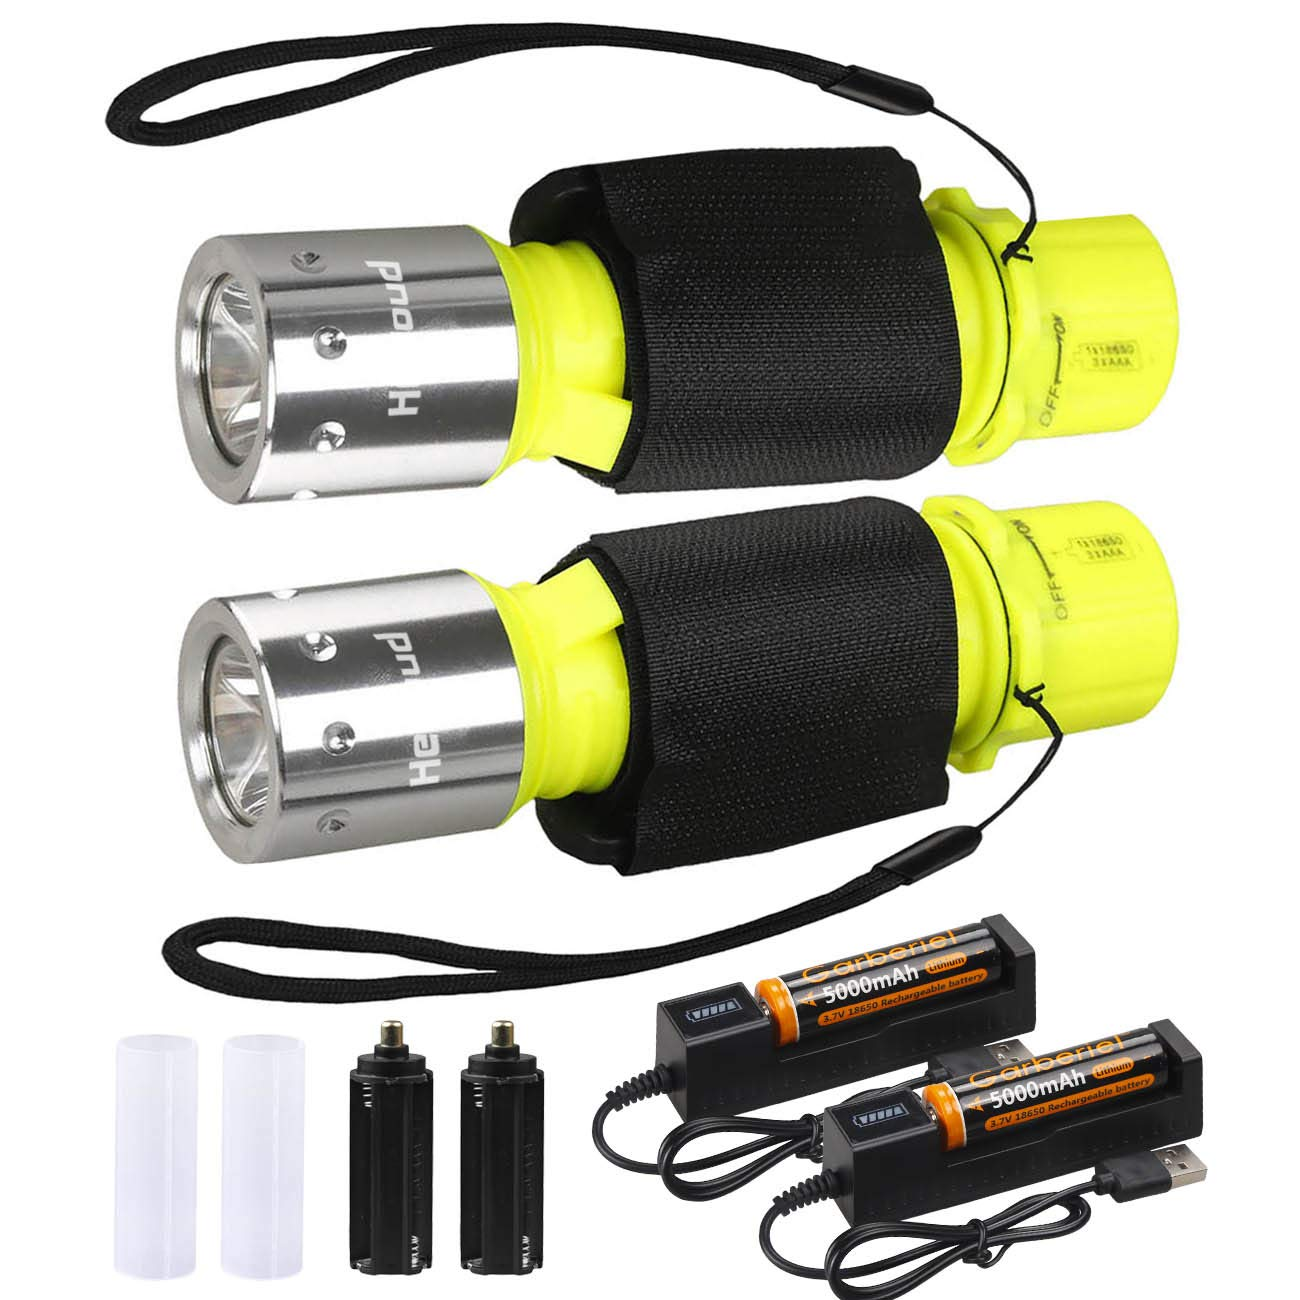 HECLOUD 2 Pack LED XM-T6 Professional Diving Flashlight with Battery Charger, Bright LED Submarine Light Scuba Safety Lights Waterproof Underwater Torch for Outdoor Under Water Sports (Yellow) by HECLOUD